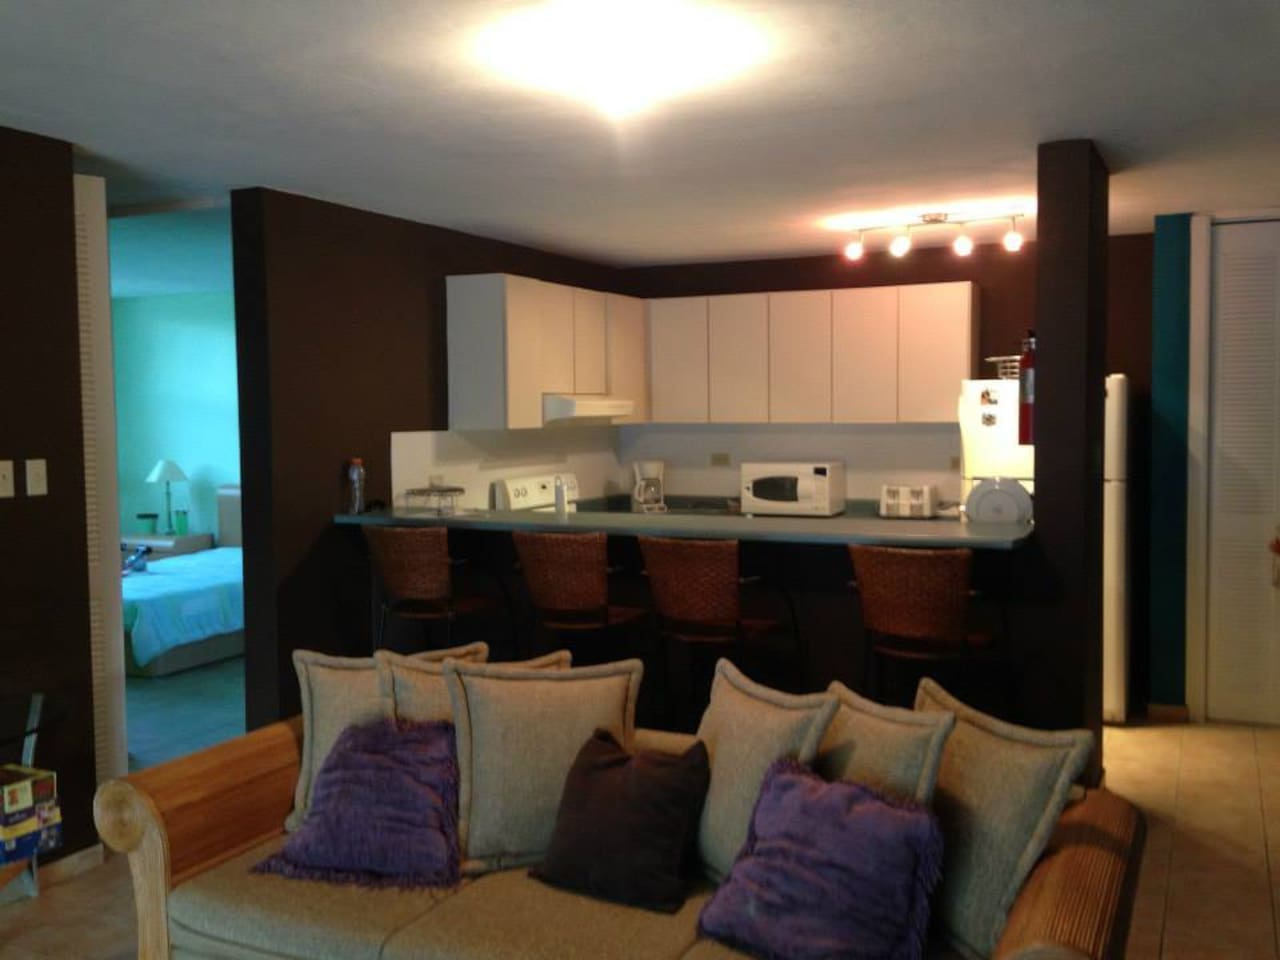 Full furnished kitchen: stove, oven, microwave, toaster, coffee maker